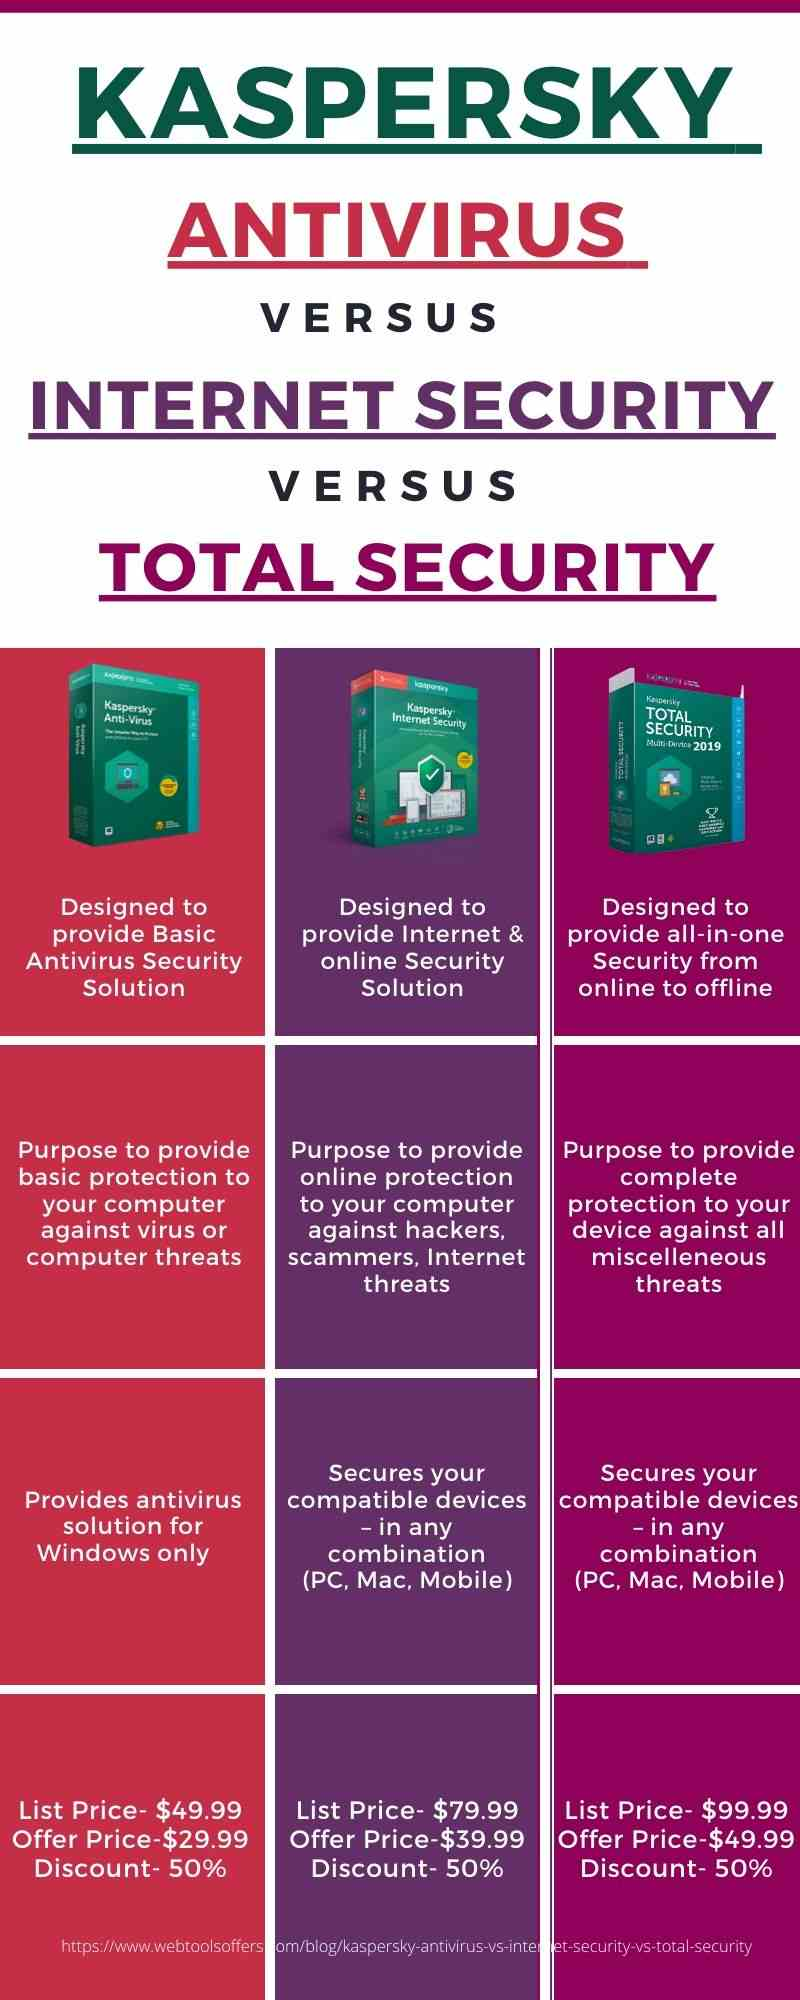 Difference between Kaspersky Antivirus and Internet Security and Total Security